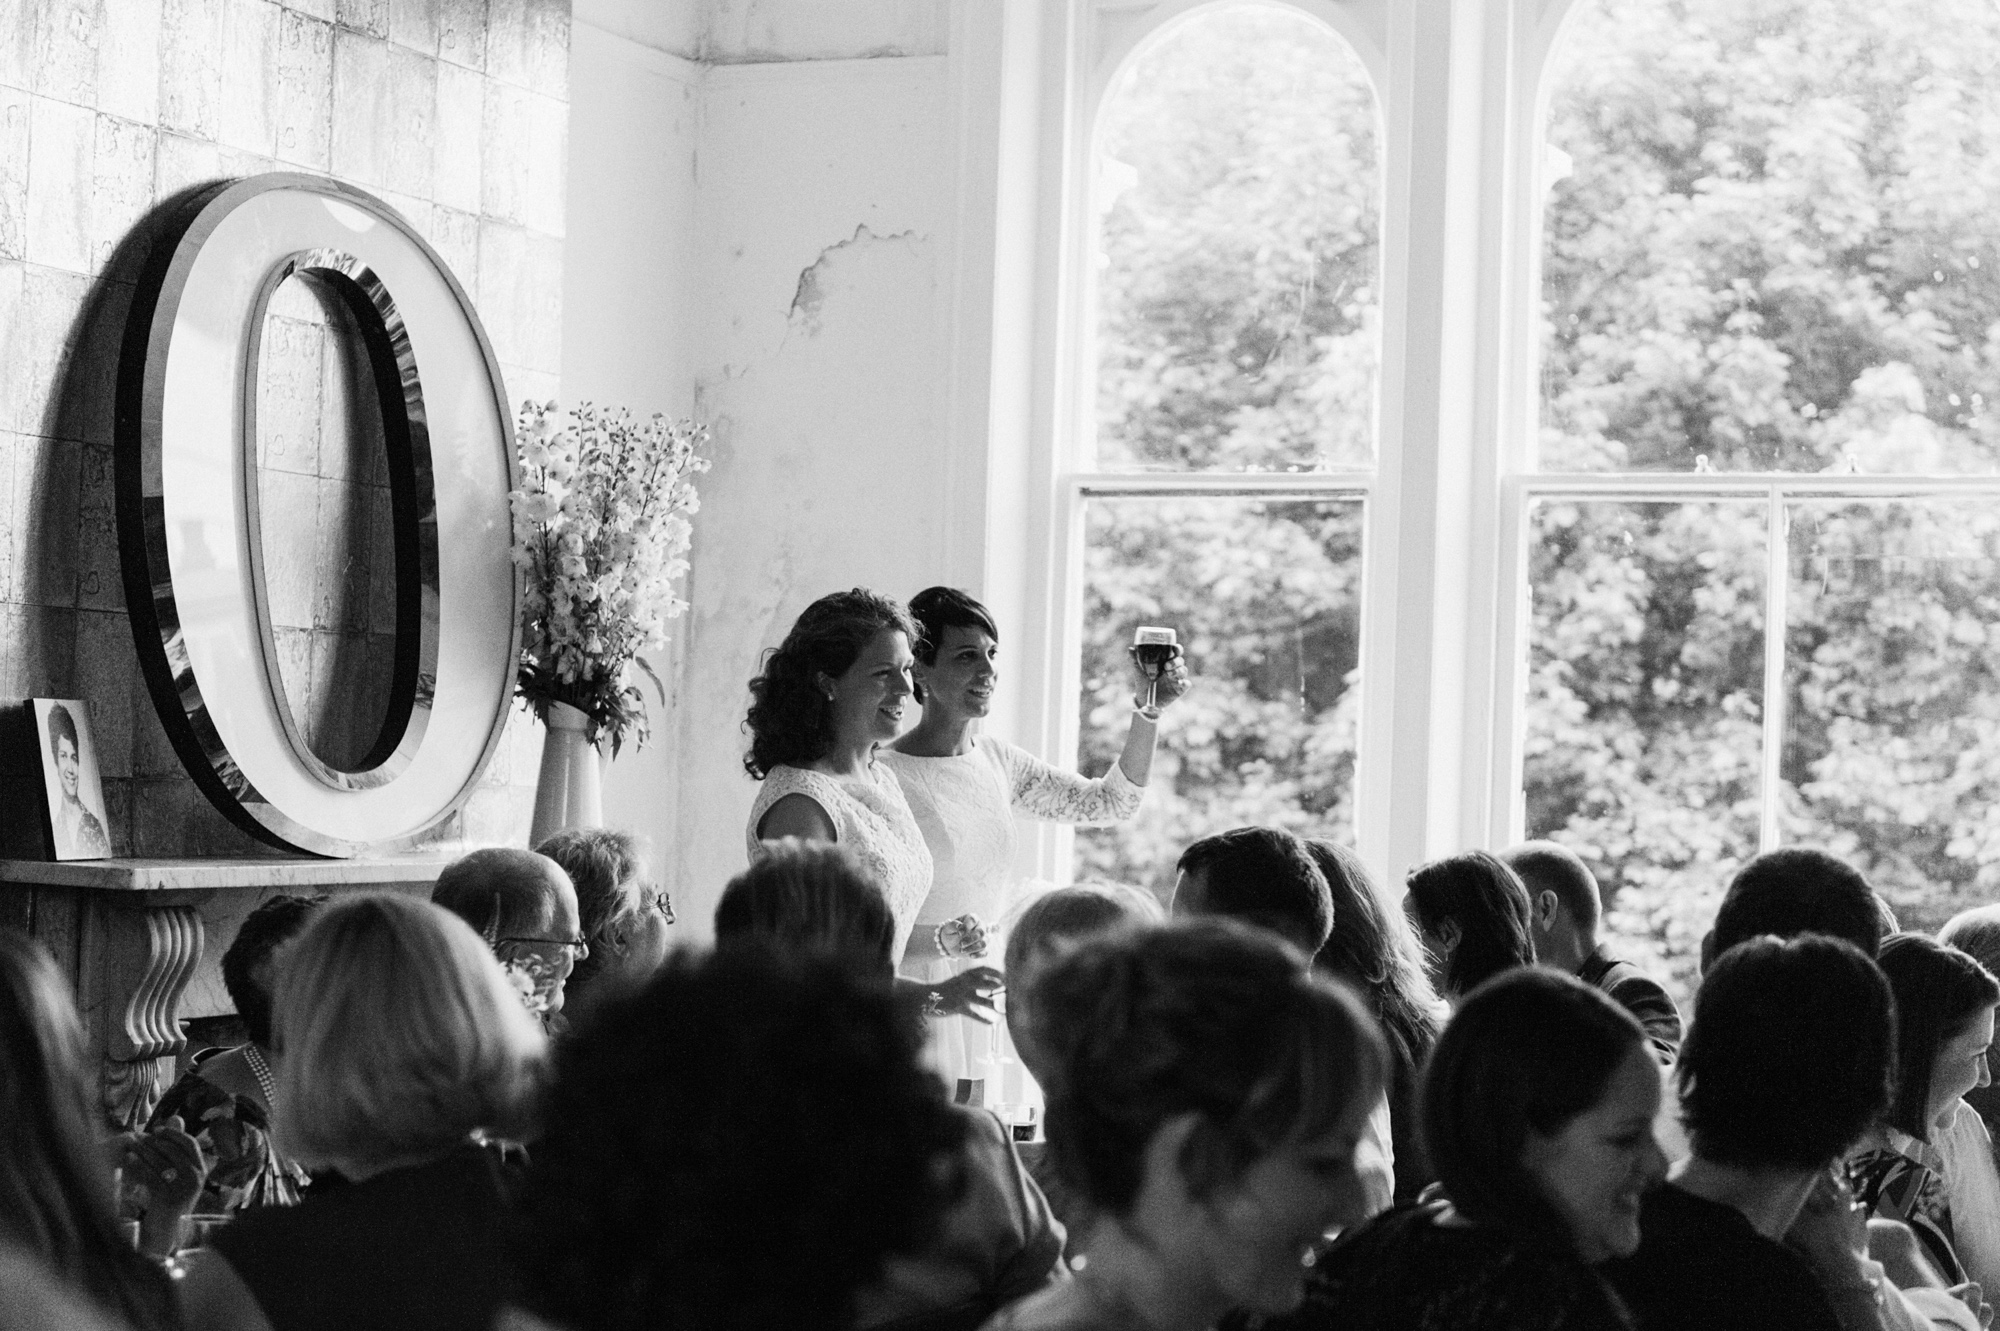 Lesbian brides toasting - quirky creative gay friendly wedding photographer The Roost Dalston London wedding photographer © Babb Photo